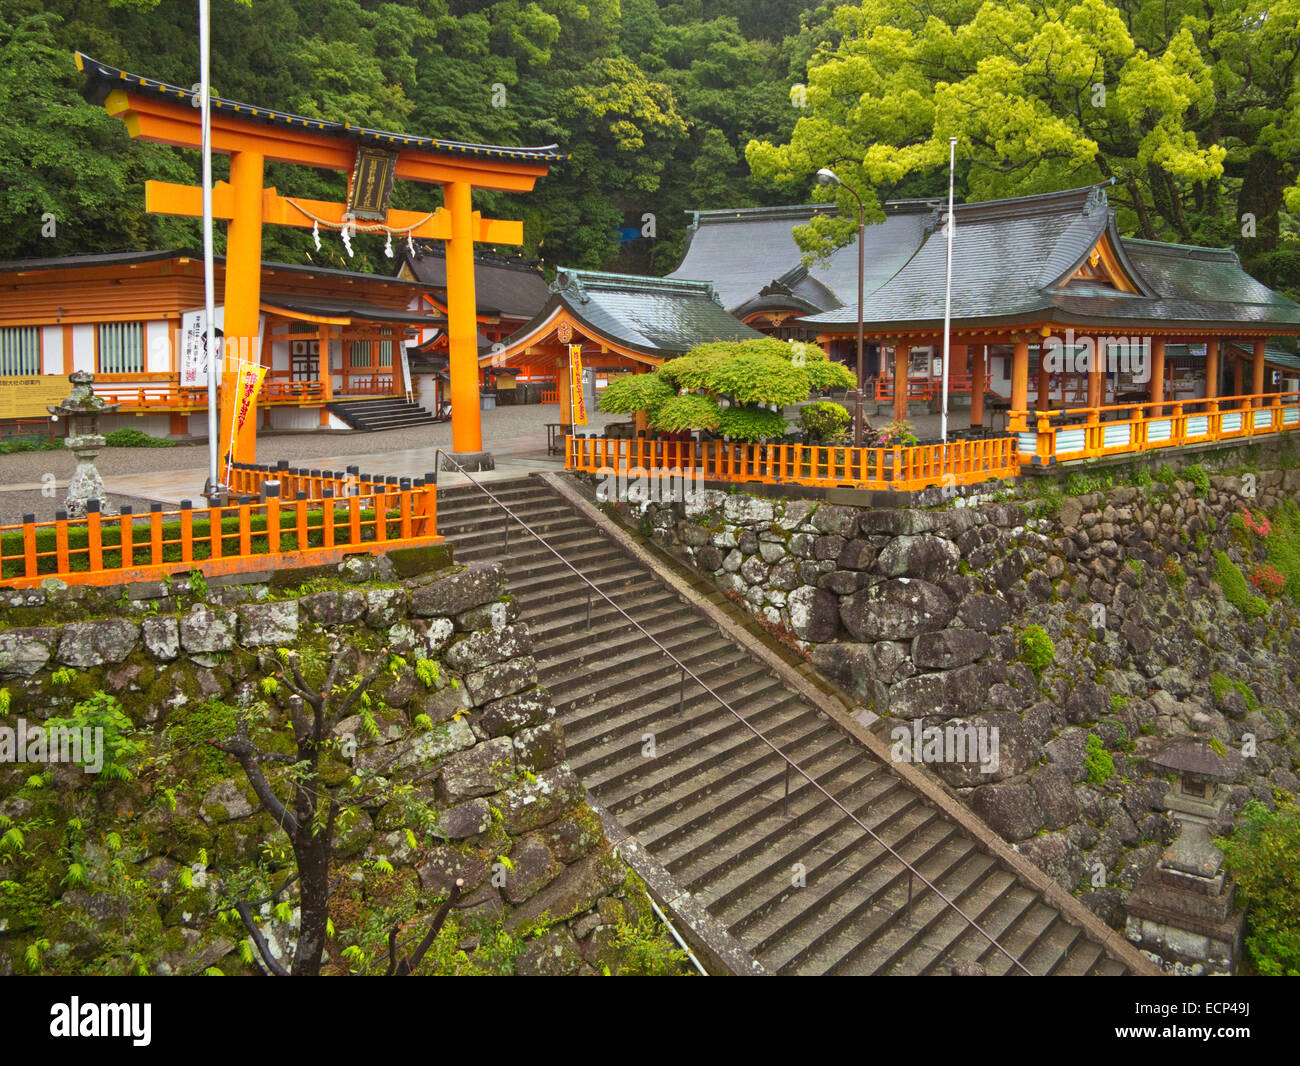 Torri gate à Kumano Nachi Taisha Grand culte, sur la route de pèlerinage de Kumano Kodo, péninsule Photo Stock